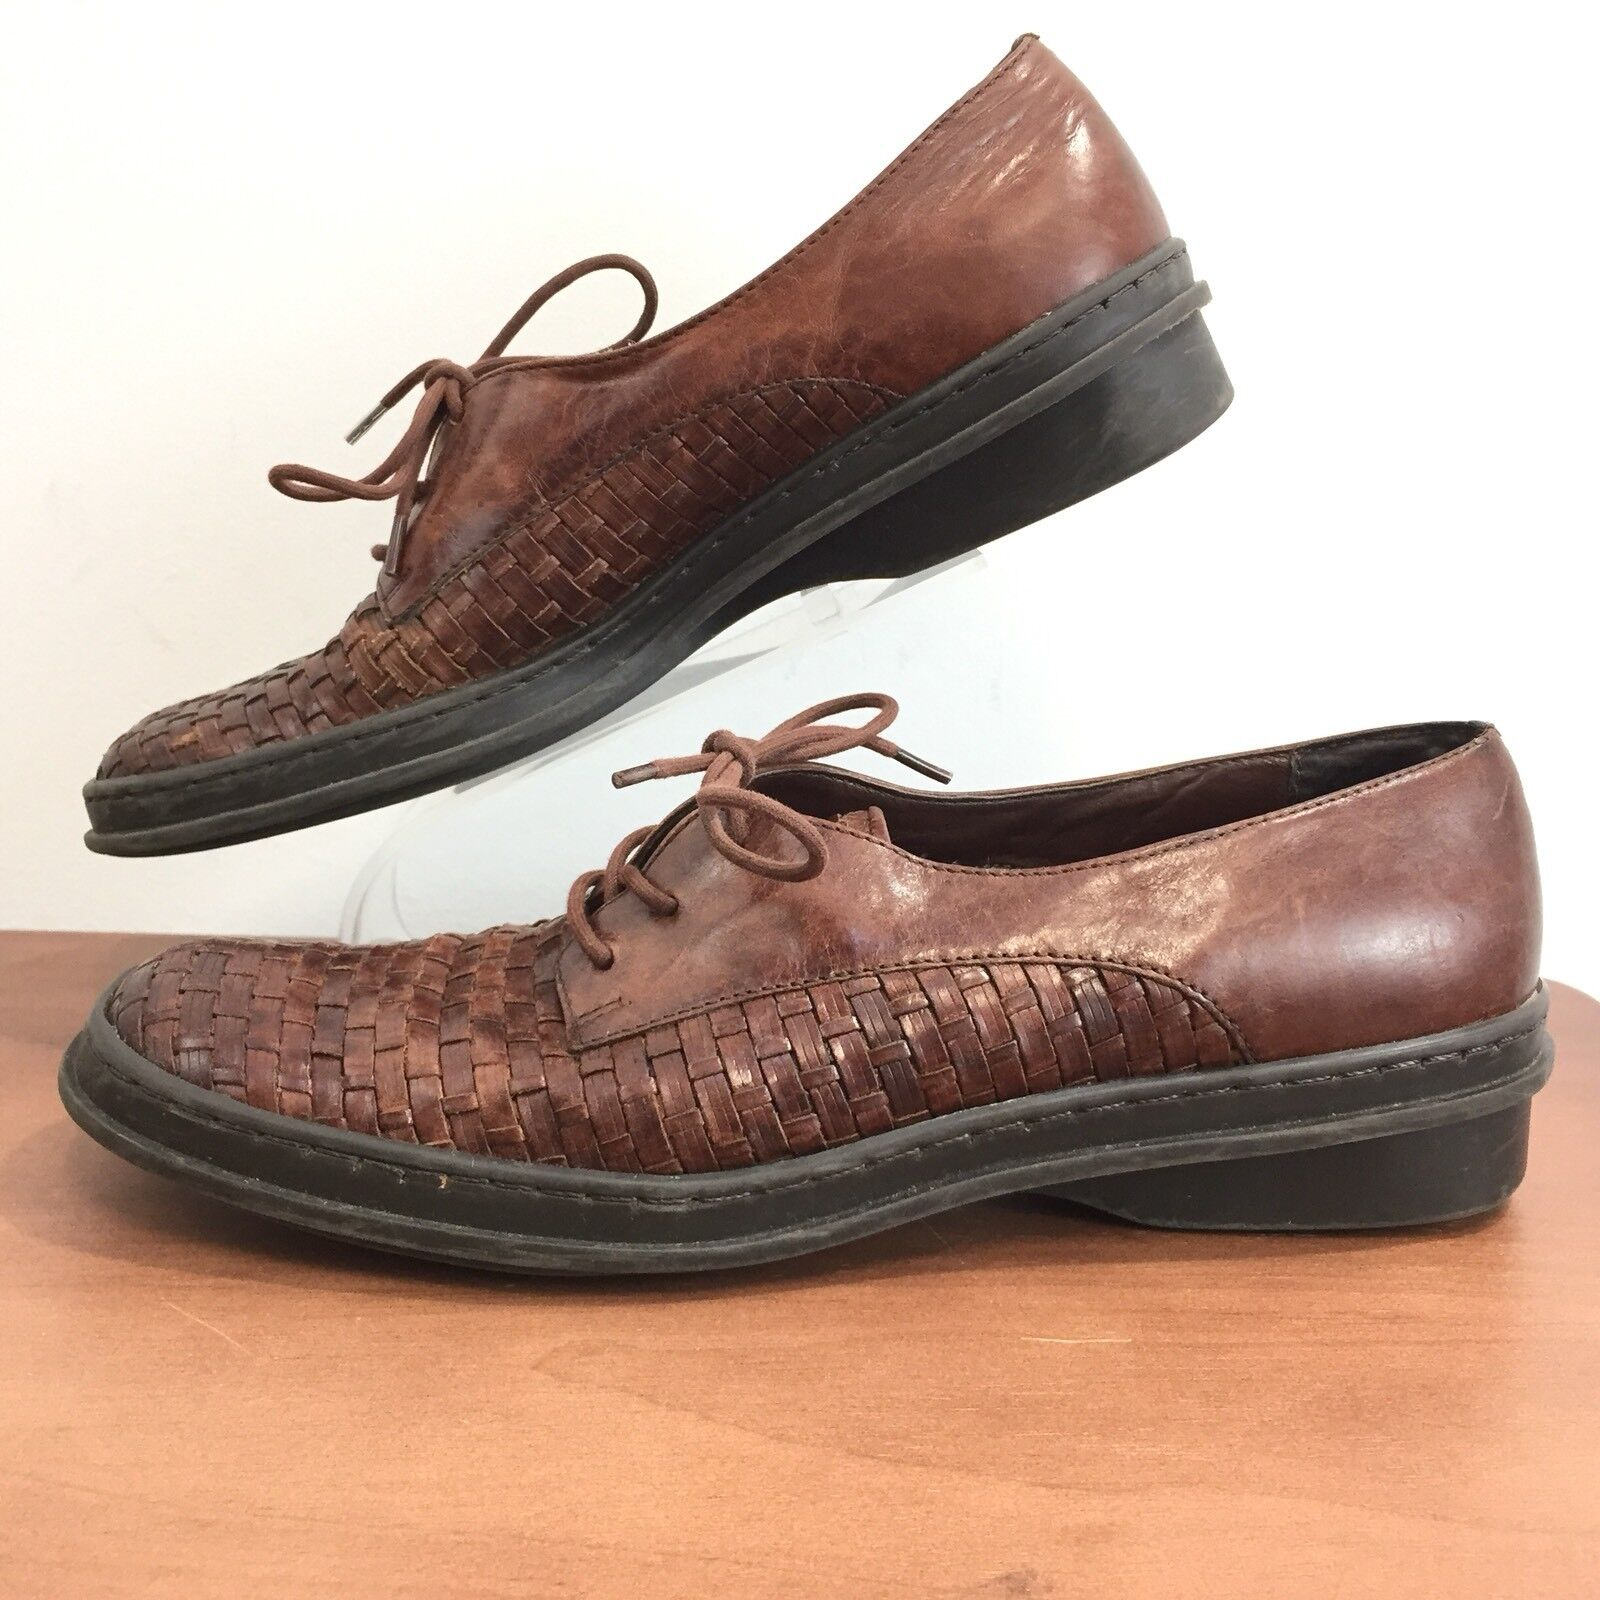 Trotters 7.5N Brown Woven Pelle Lace Up Shoes Cushioned Comfort Donna 7.5 N